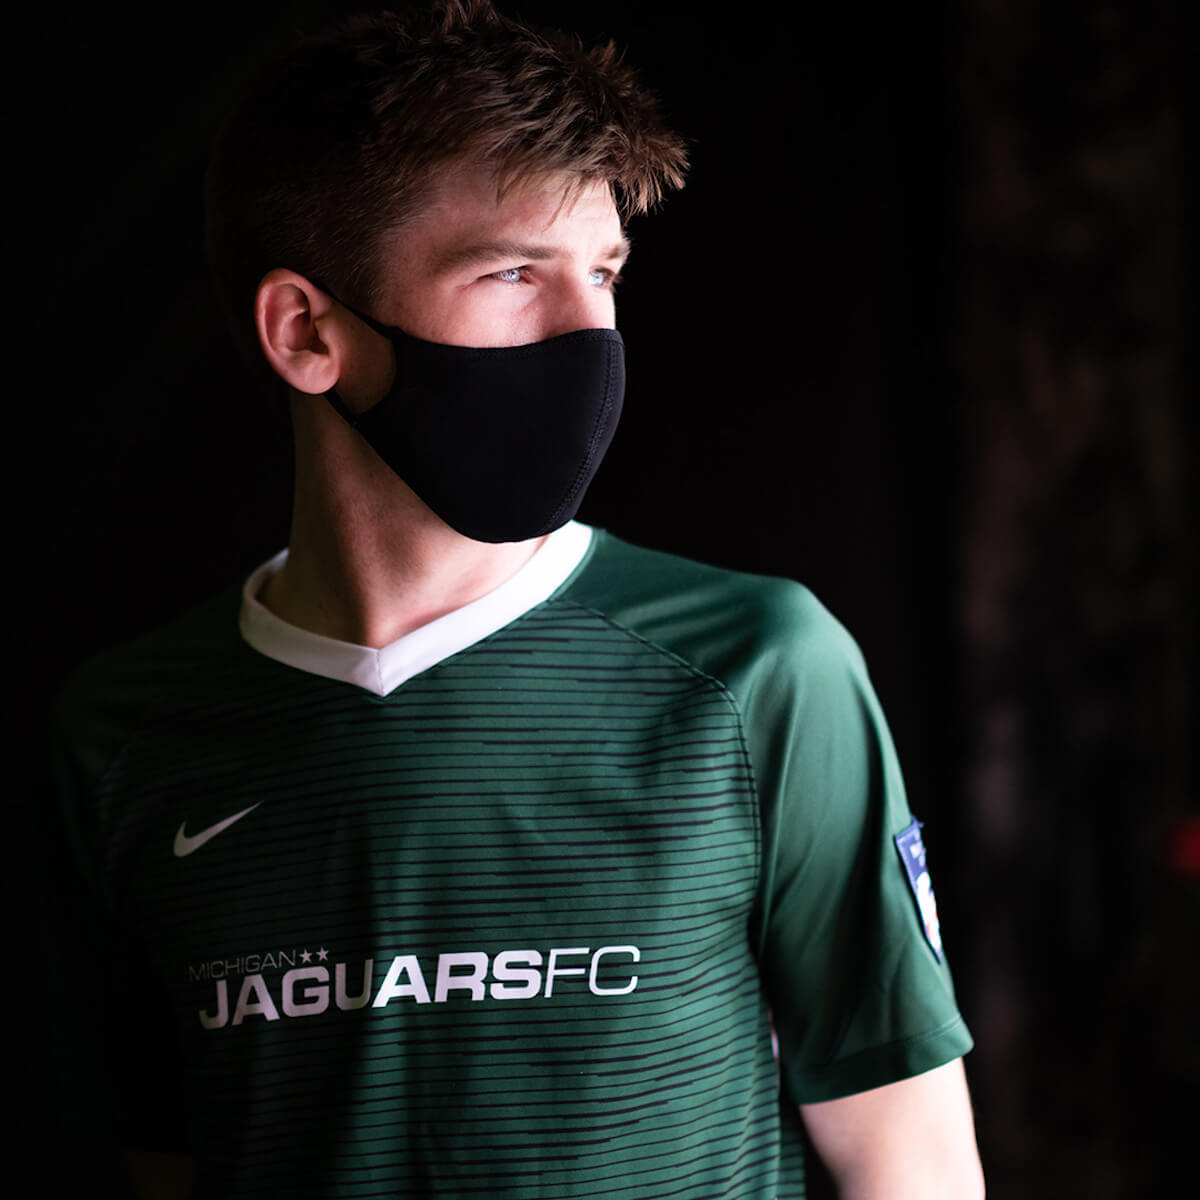 High school senior Jack Leuker, who plays for the Michigan Jaguars, a Novi-based club soccer team, is one of the players the University of Michigan's Return to Play program has helped